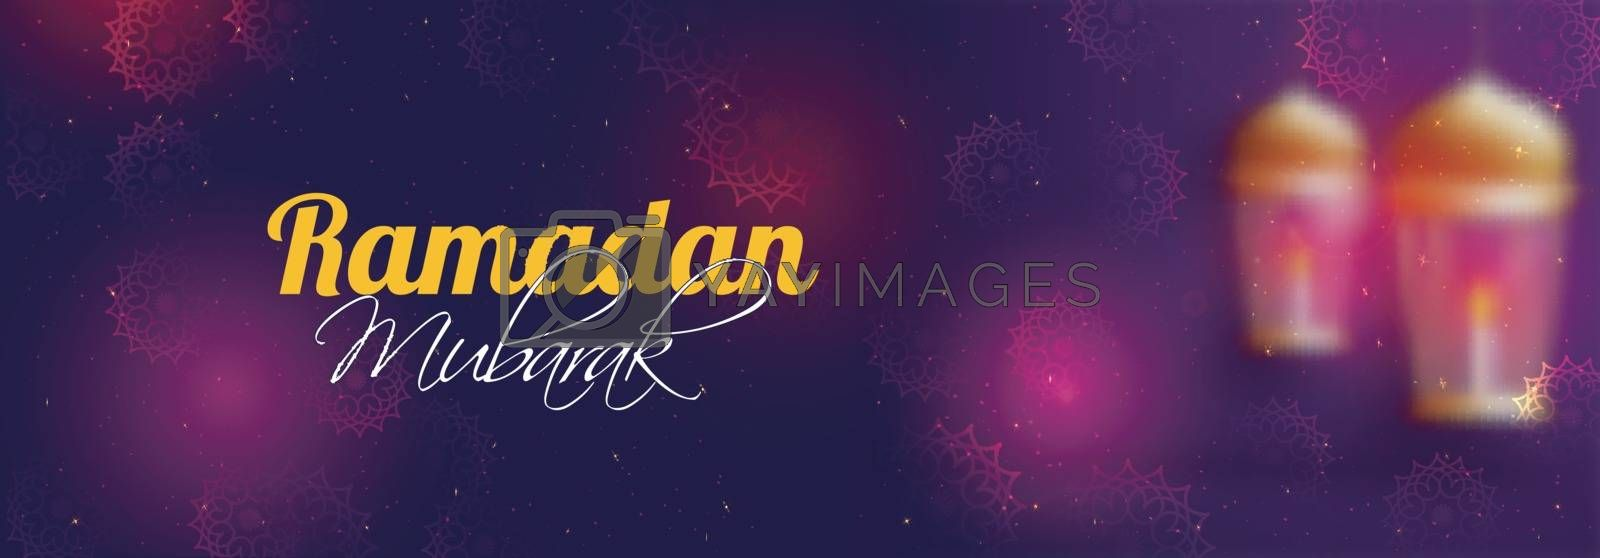 Islamic Holy Month, Ramadan Mubarak Social Media Banner design with beautiful blurred lamps and floral decoration.